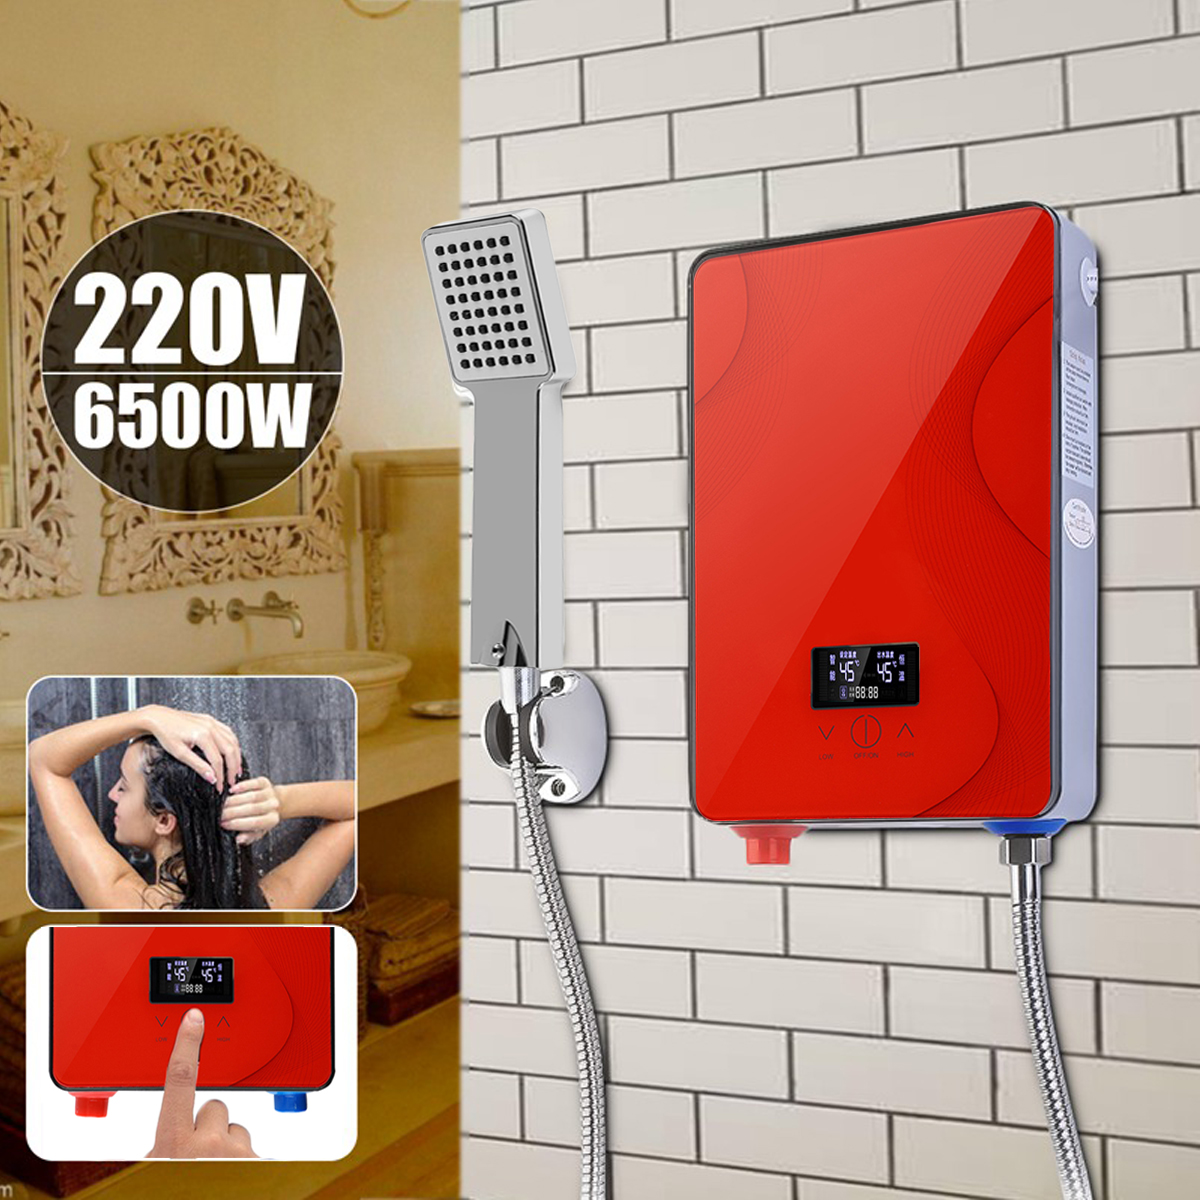 6500W Tankless Instant Electric Hot Water Heater 220V Boiler Bathroom Shower Set Safe Intelligent Automatically Tempered Glass6500W Tankless Instant Electric Hot Water Heater 220V Boiler Bathroom Shower Set Safe Intelligent Automatically Tempered Glass